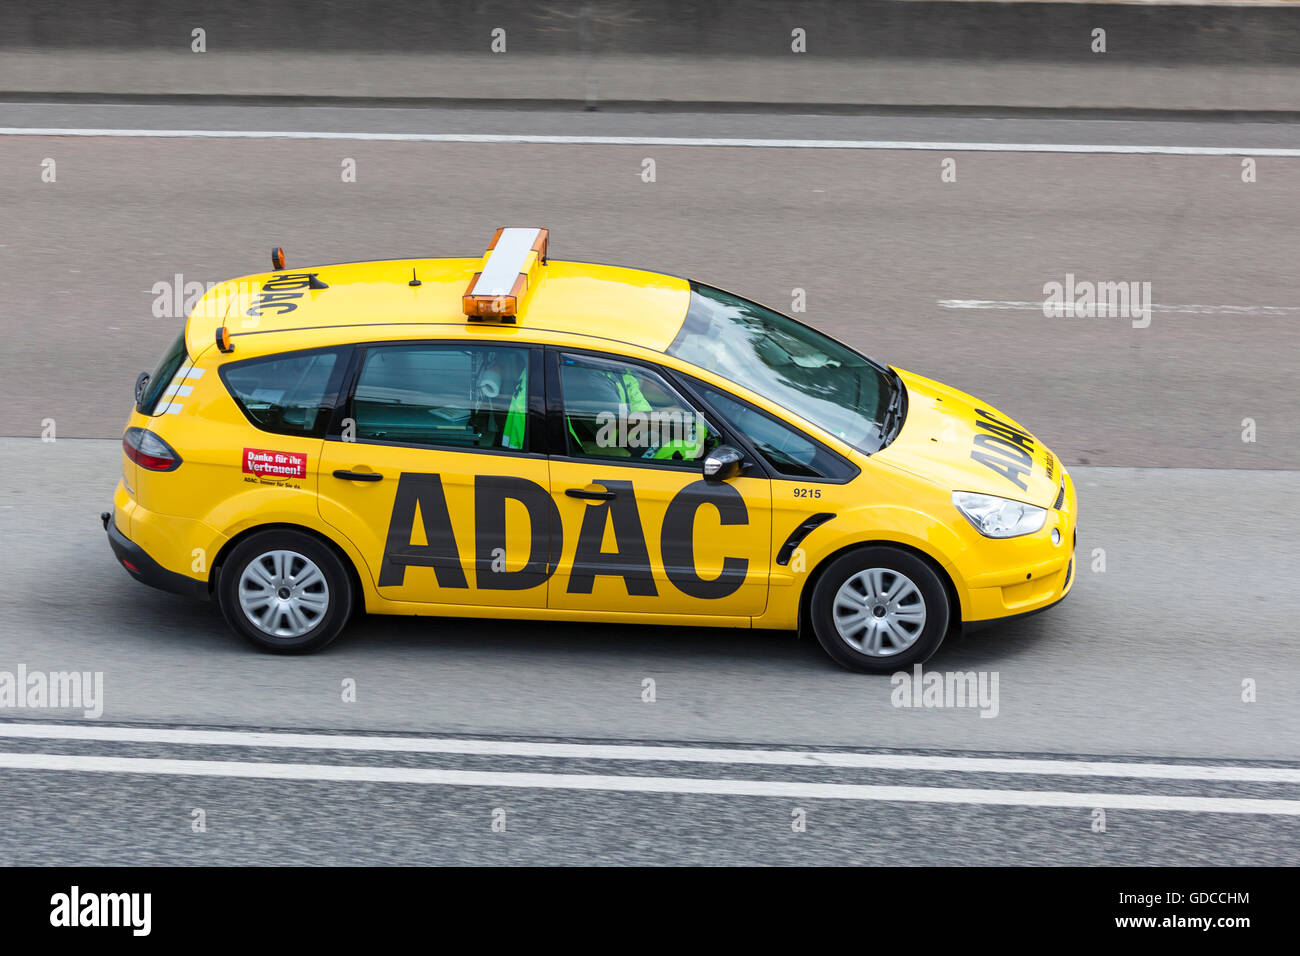 Yellow ADAC Ford S-Max on the highway - Stock Image